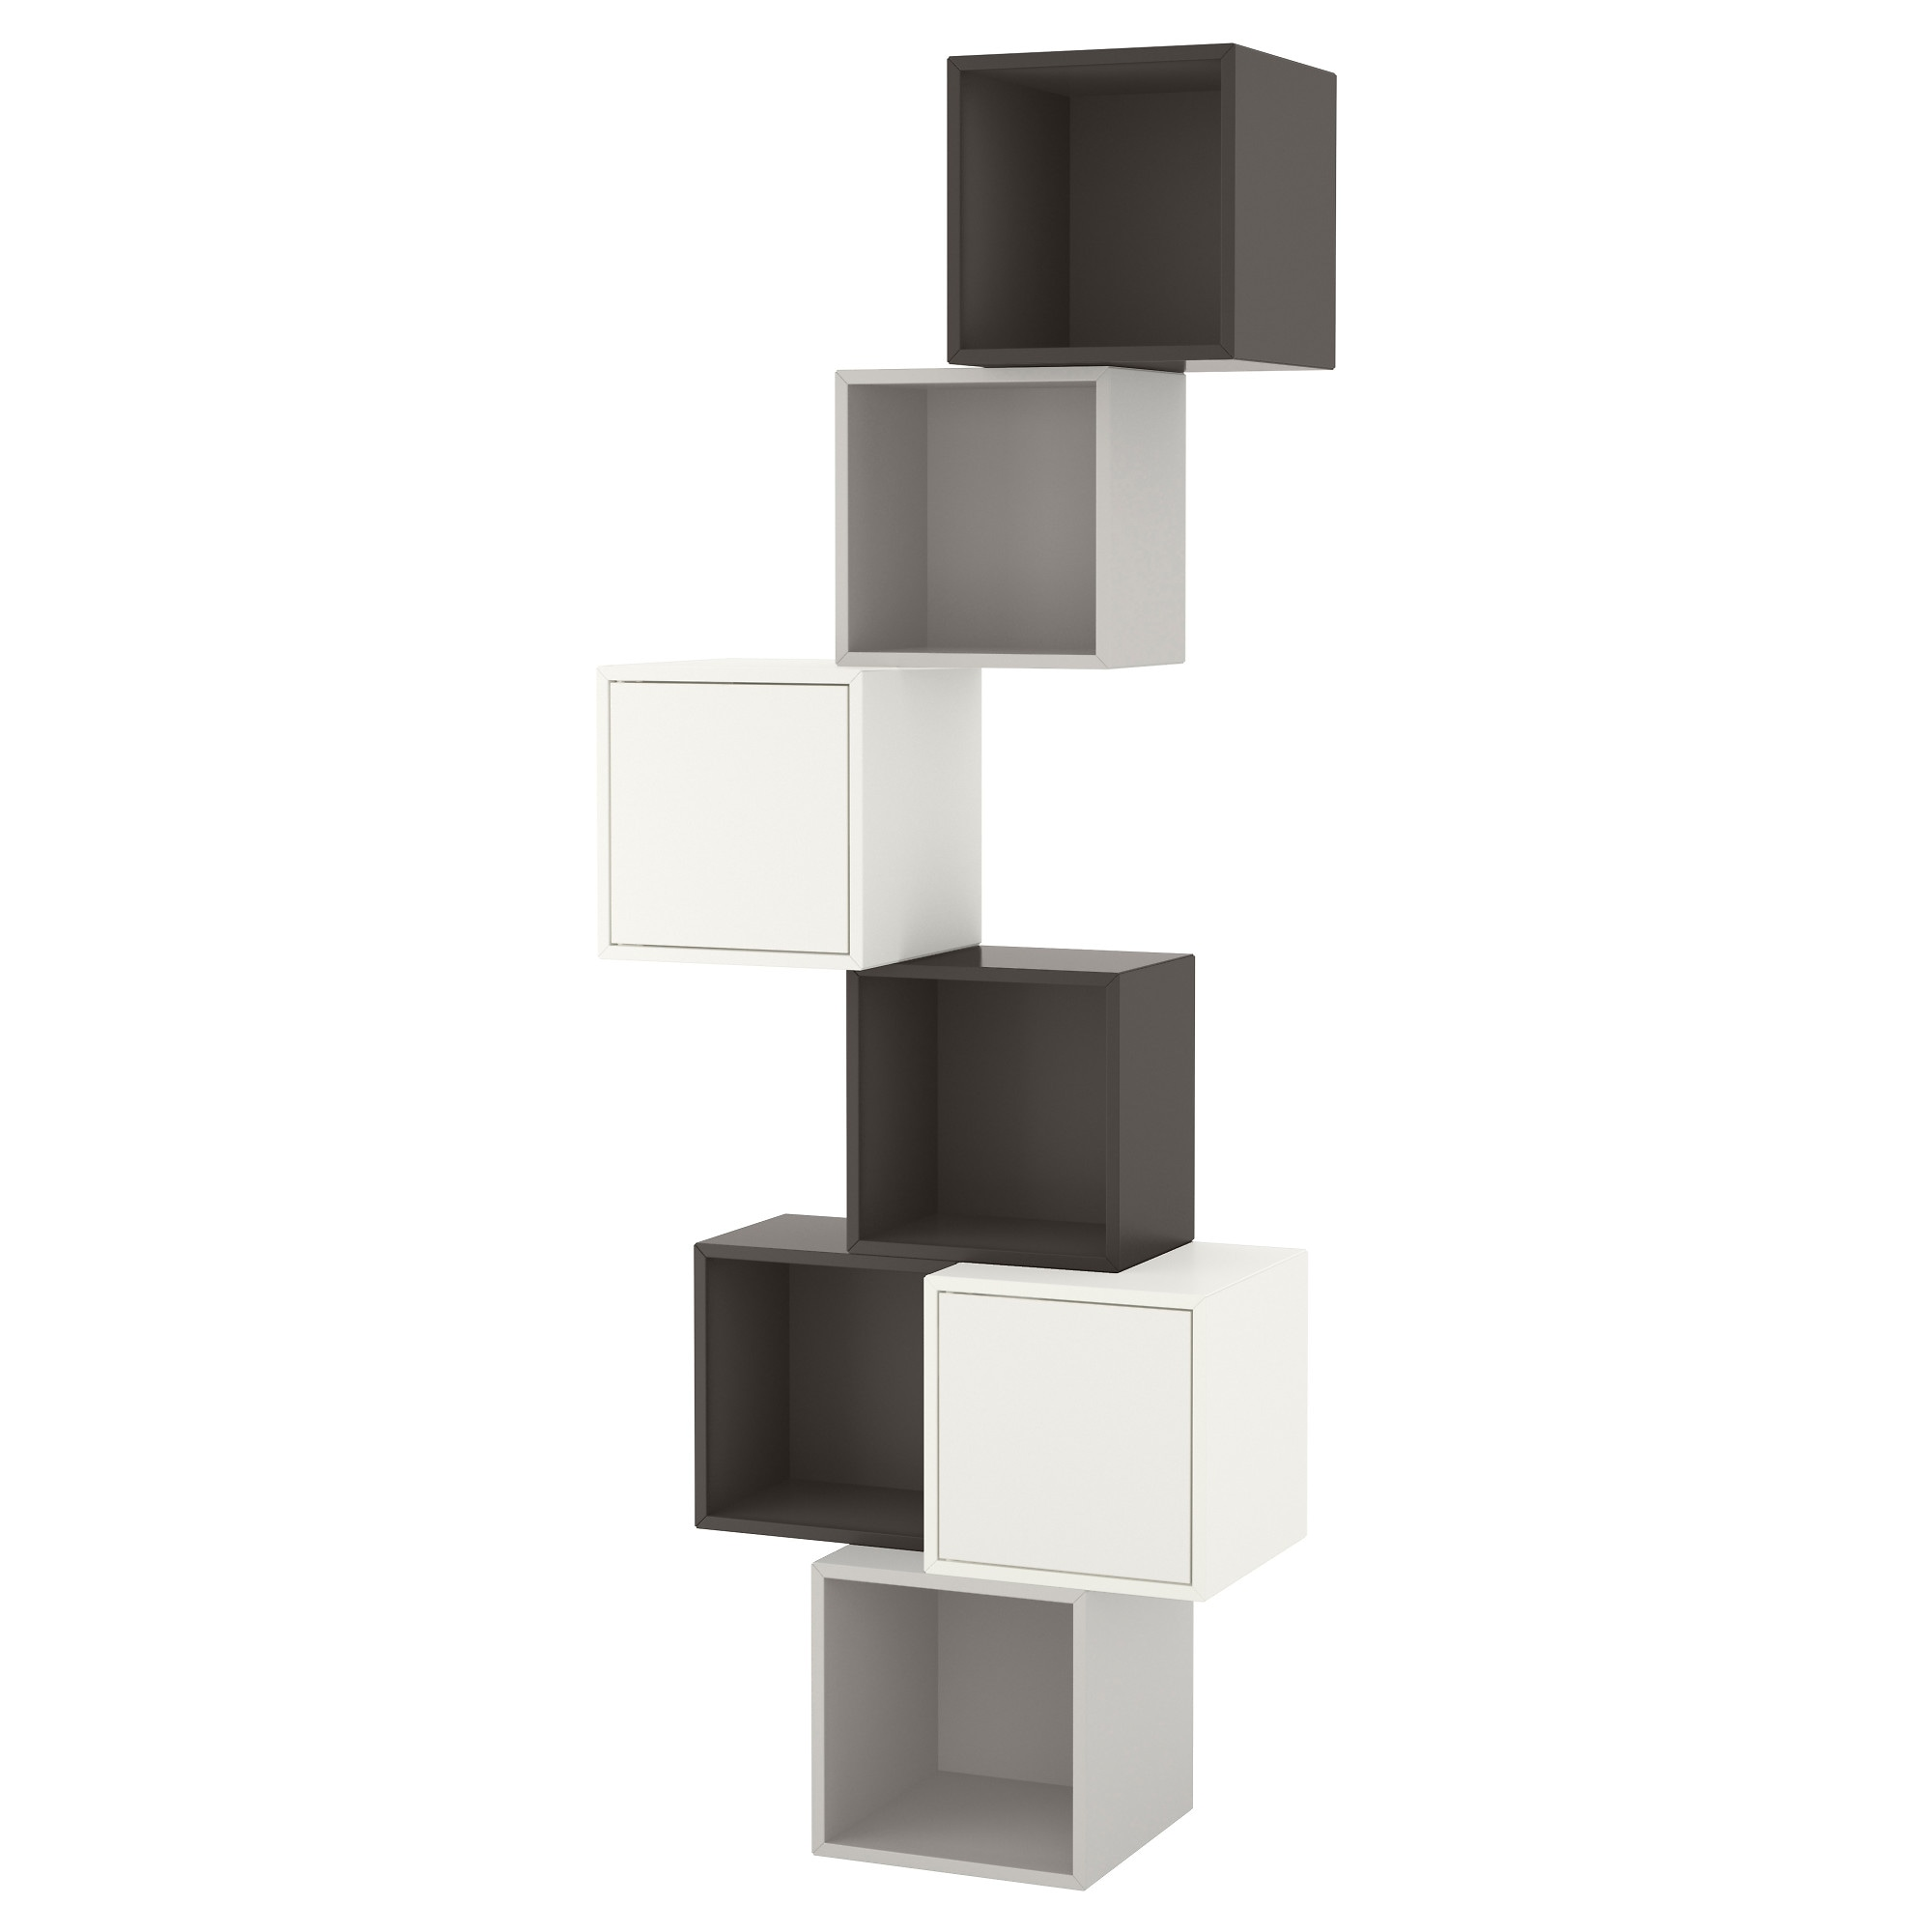 awesome eket agencement rangement mural blancgris fonc gris clair longueur with cube rangement mural. Black Bedroom Furniture Sets. Home Design Ideas